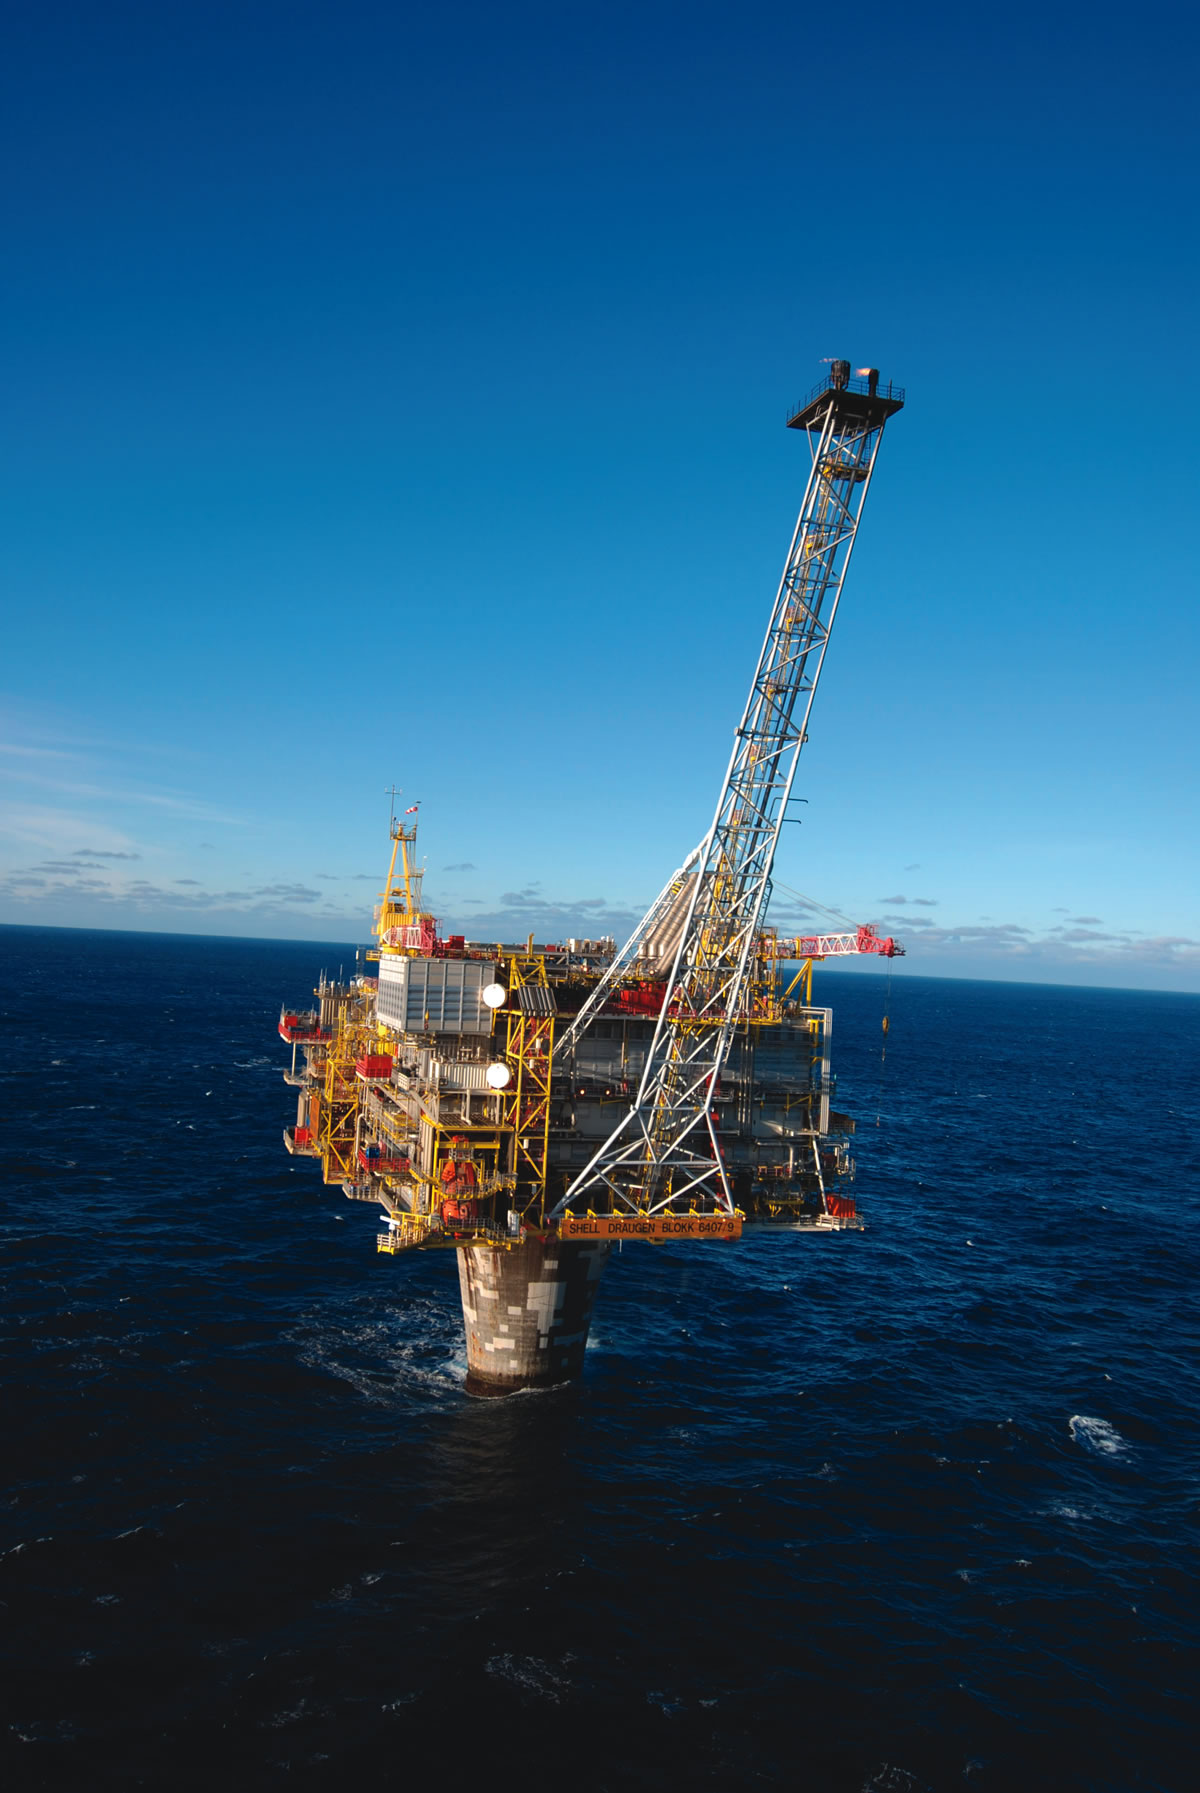 The first subsea multiphase pump was installed by Shell at Draugen field in Block 6407/9 in the Norwegian Sea.